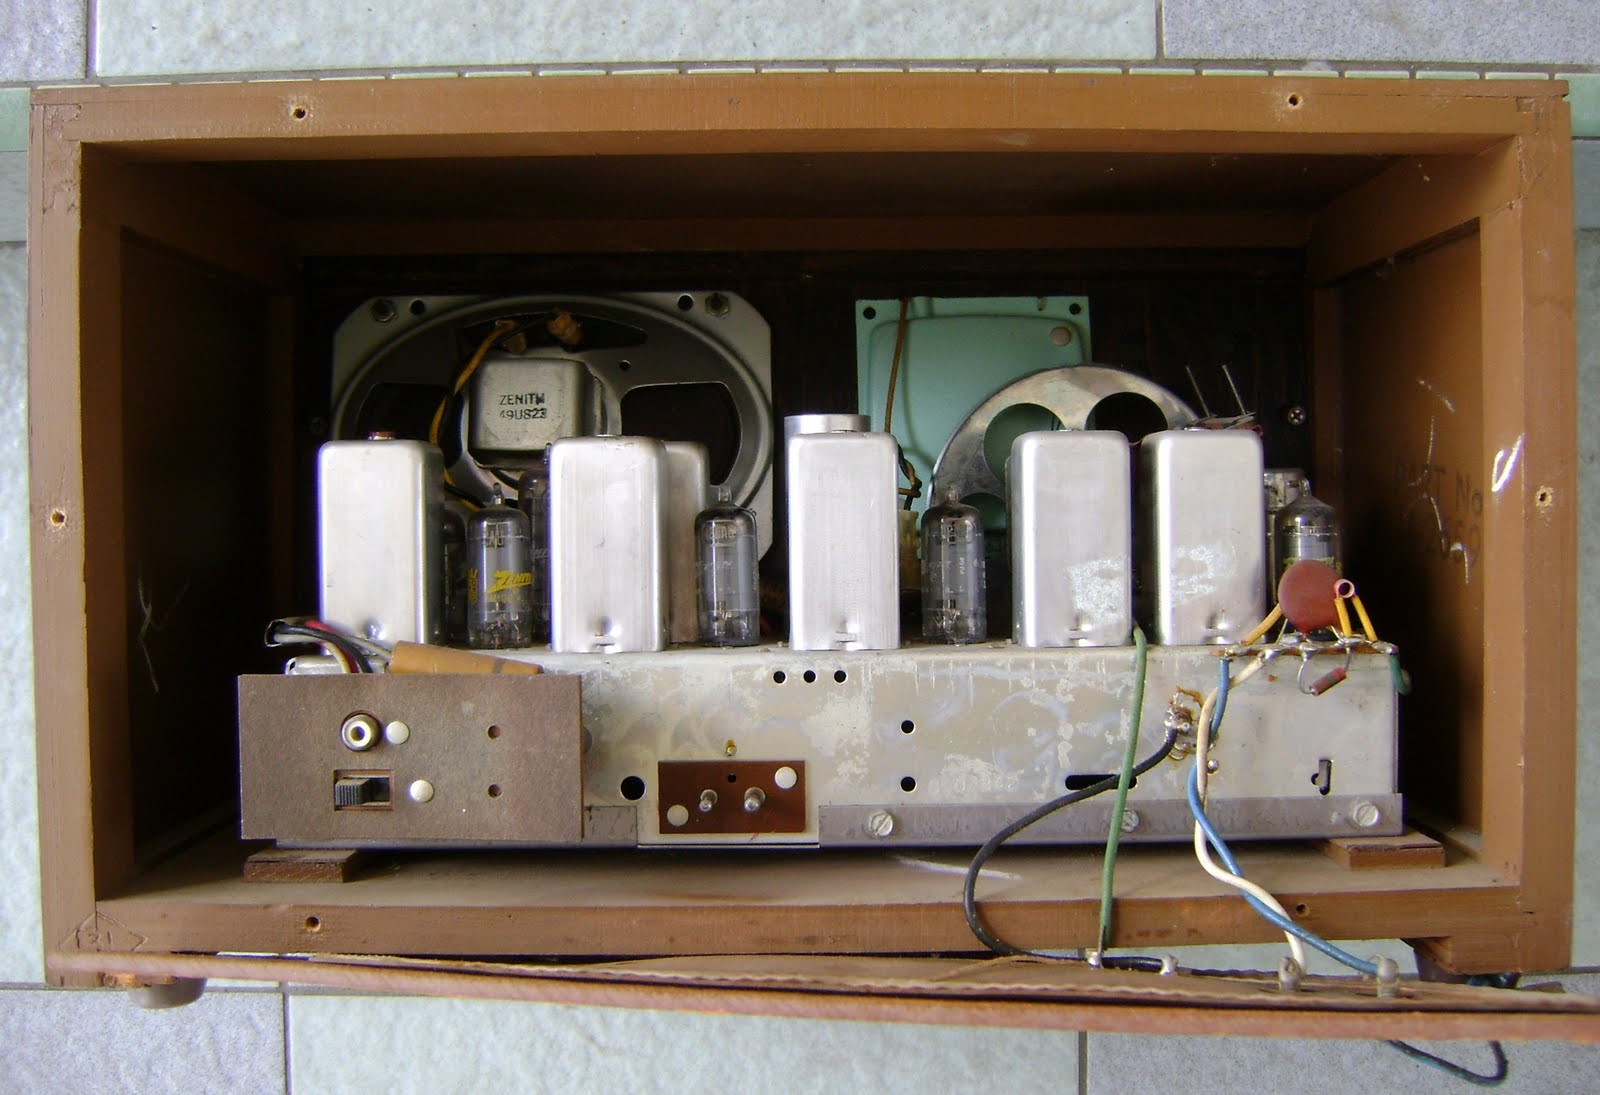 Kinta Valley Audio Zenith Model C730 Tube Radio Used Sold. For Sale Vintage Zenith Model C730 Amfm Tube Radio 110v Power Input Made In Usavery Beautiful Solid Wood Body And Very Nice Condition. Wiring. Zenith Radio Schematics Model C730 At Scoala.co